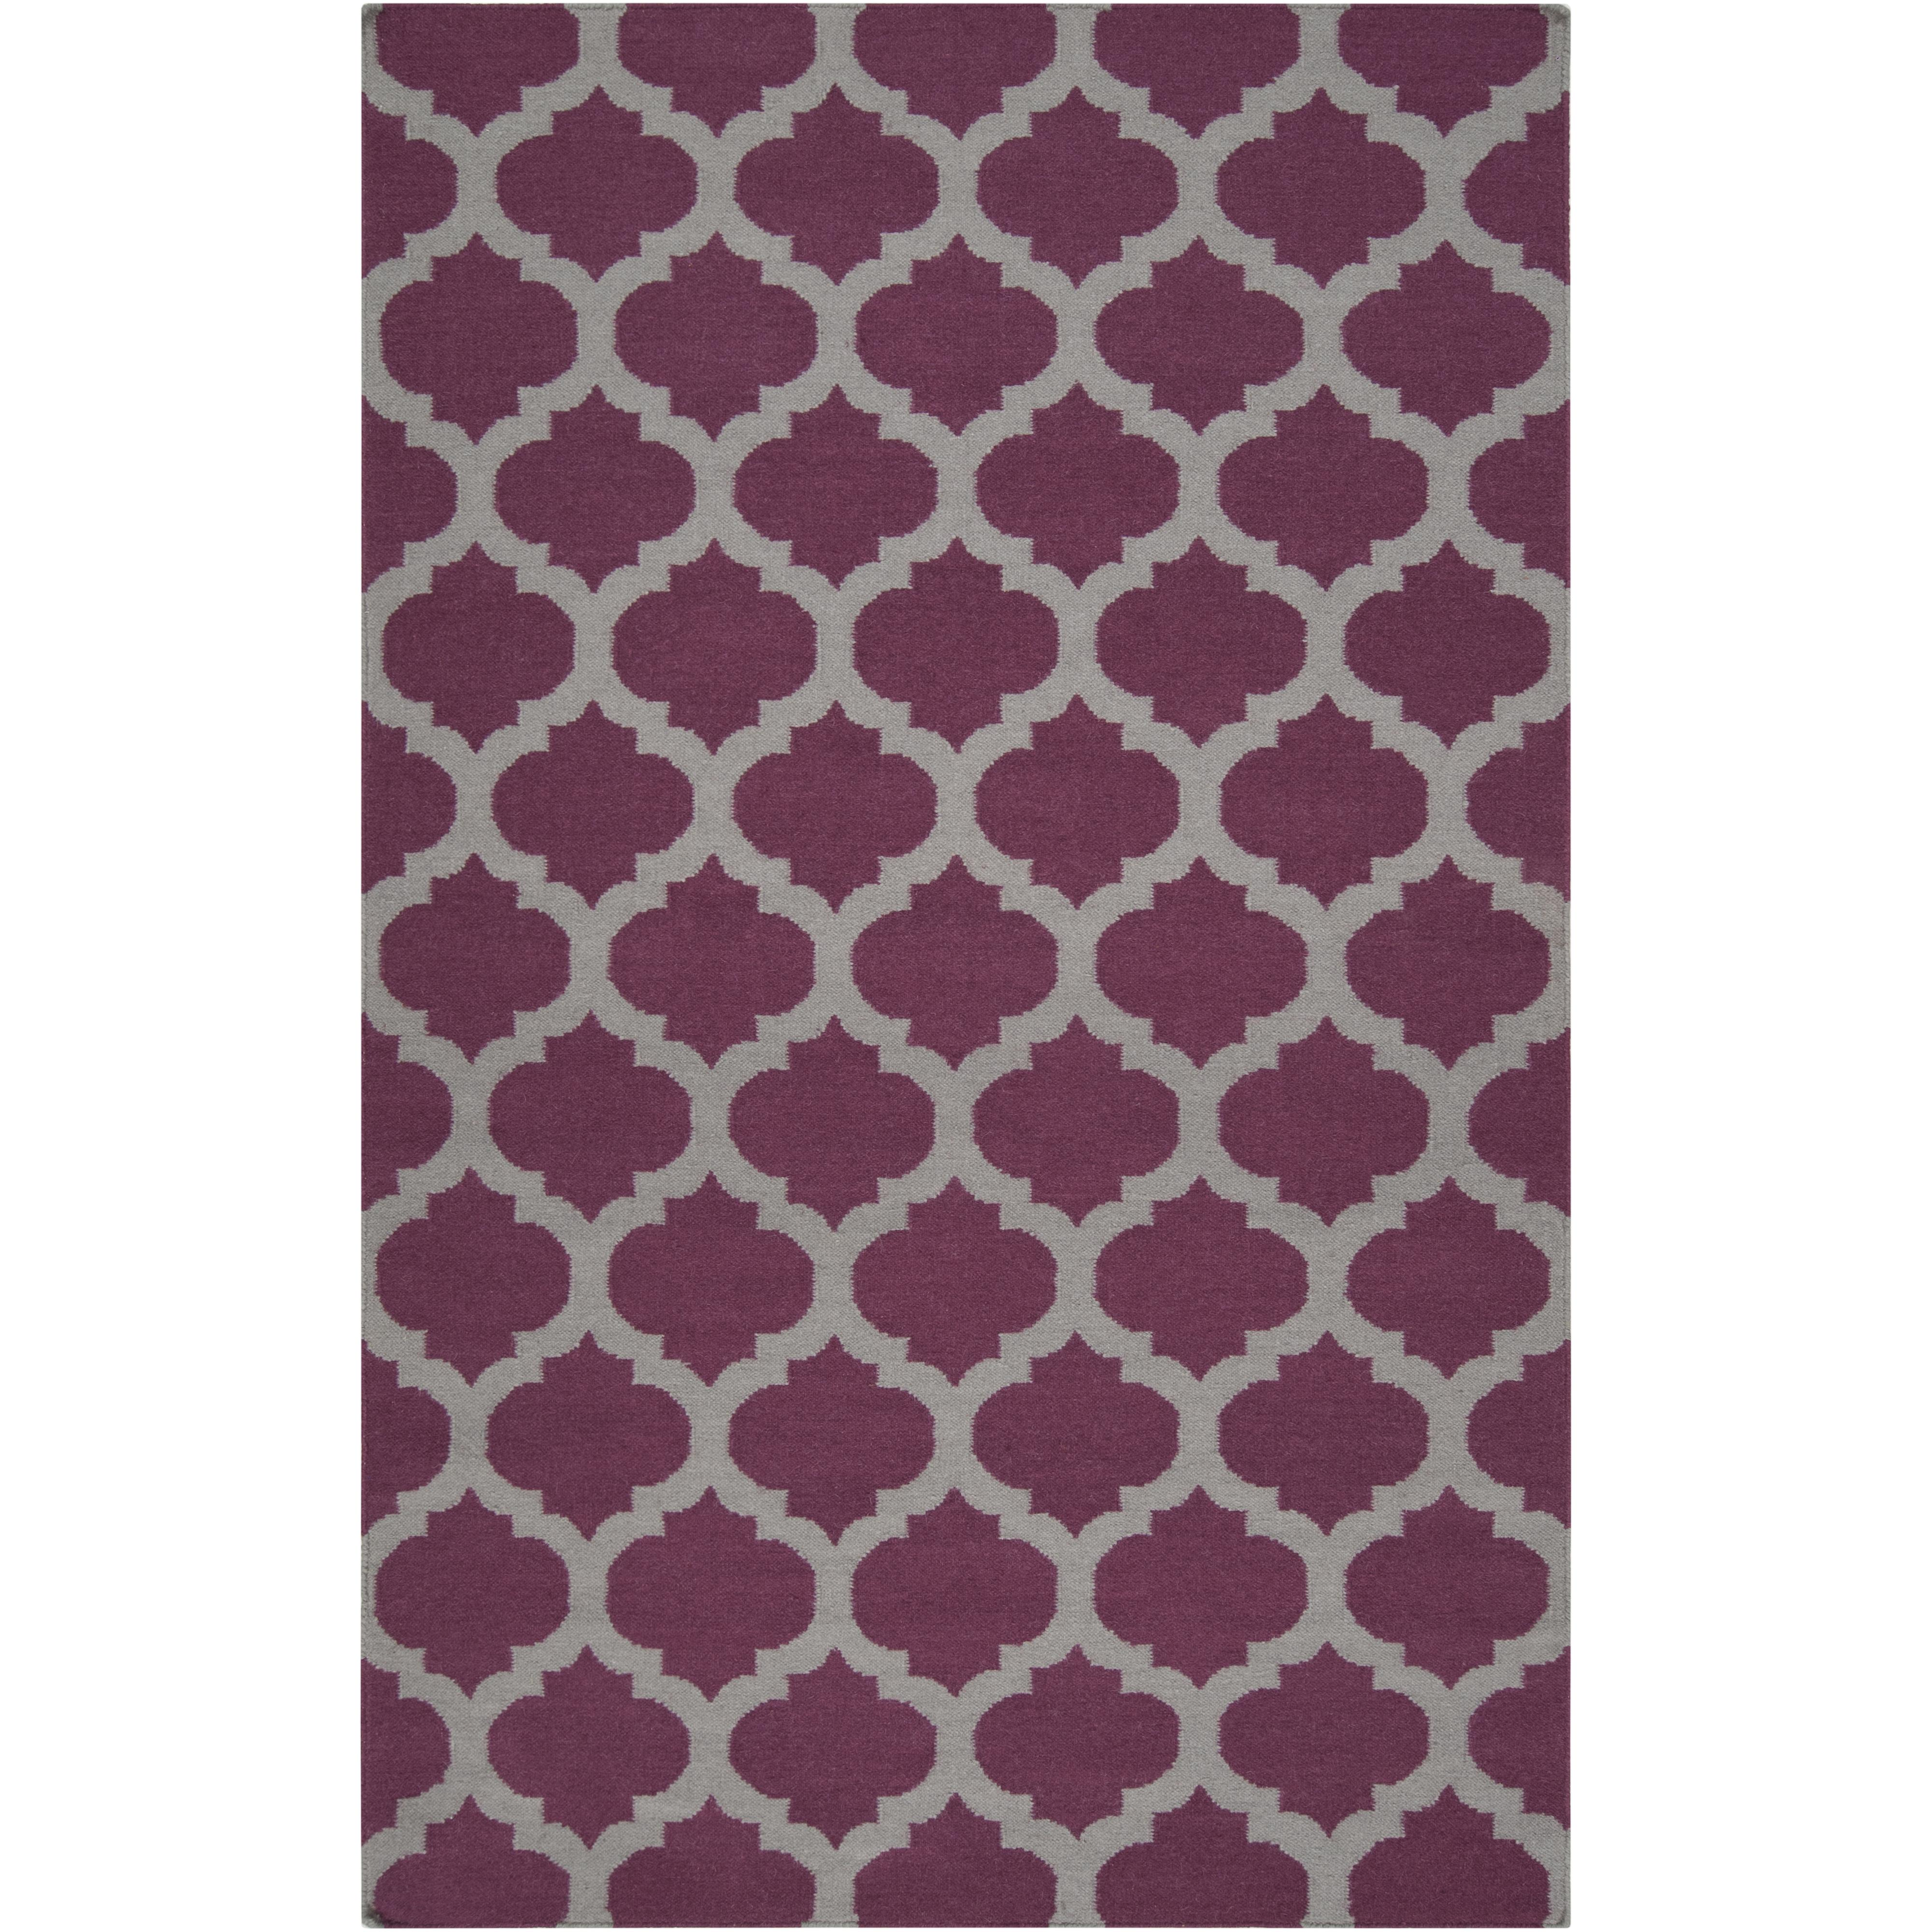 Surya Rugs Frontier 9' x 13' - Item Number: FT115-913